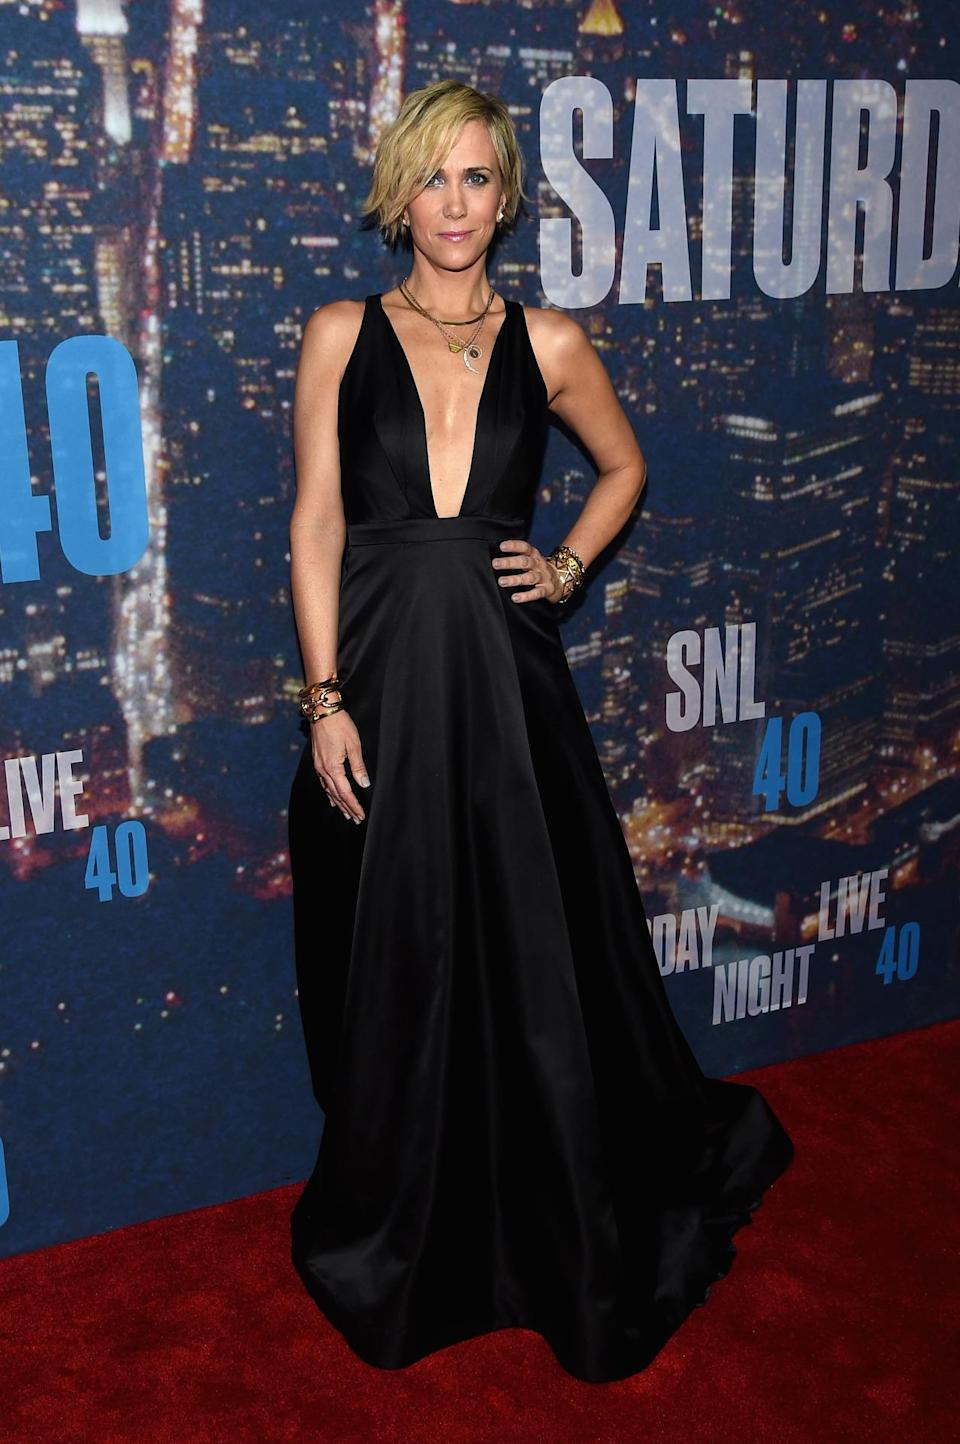 Kristen Wiig went full-on black tie in a plunging black dress with full skirt. Her ruffled up hair and bohemian accessories make the look a bit more casual.